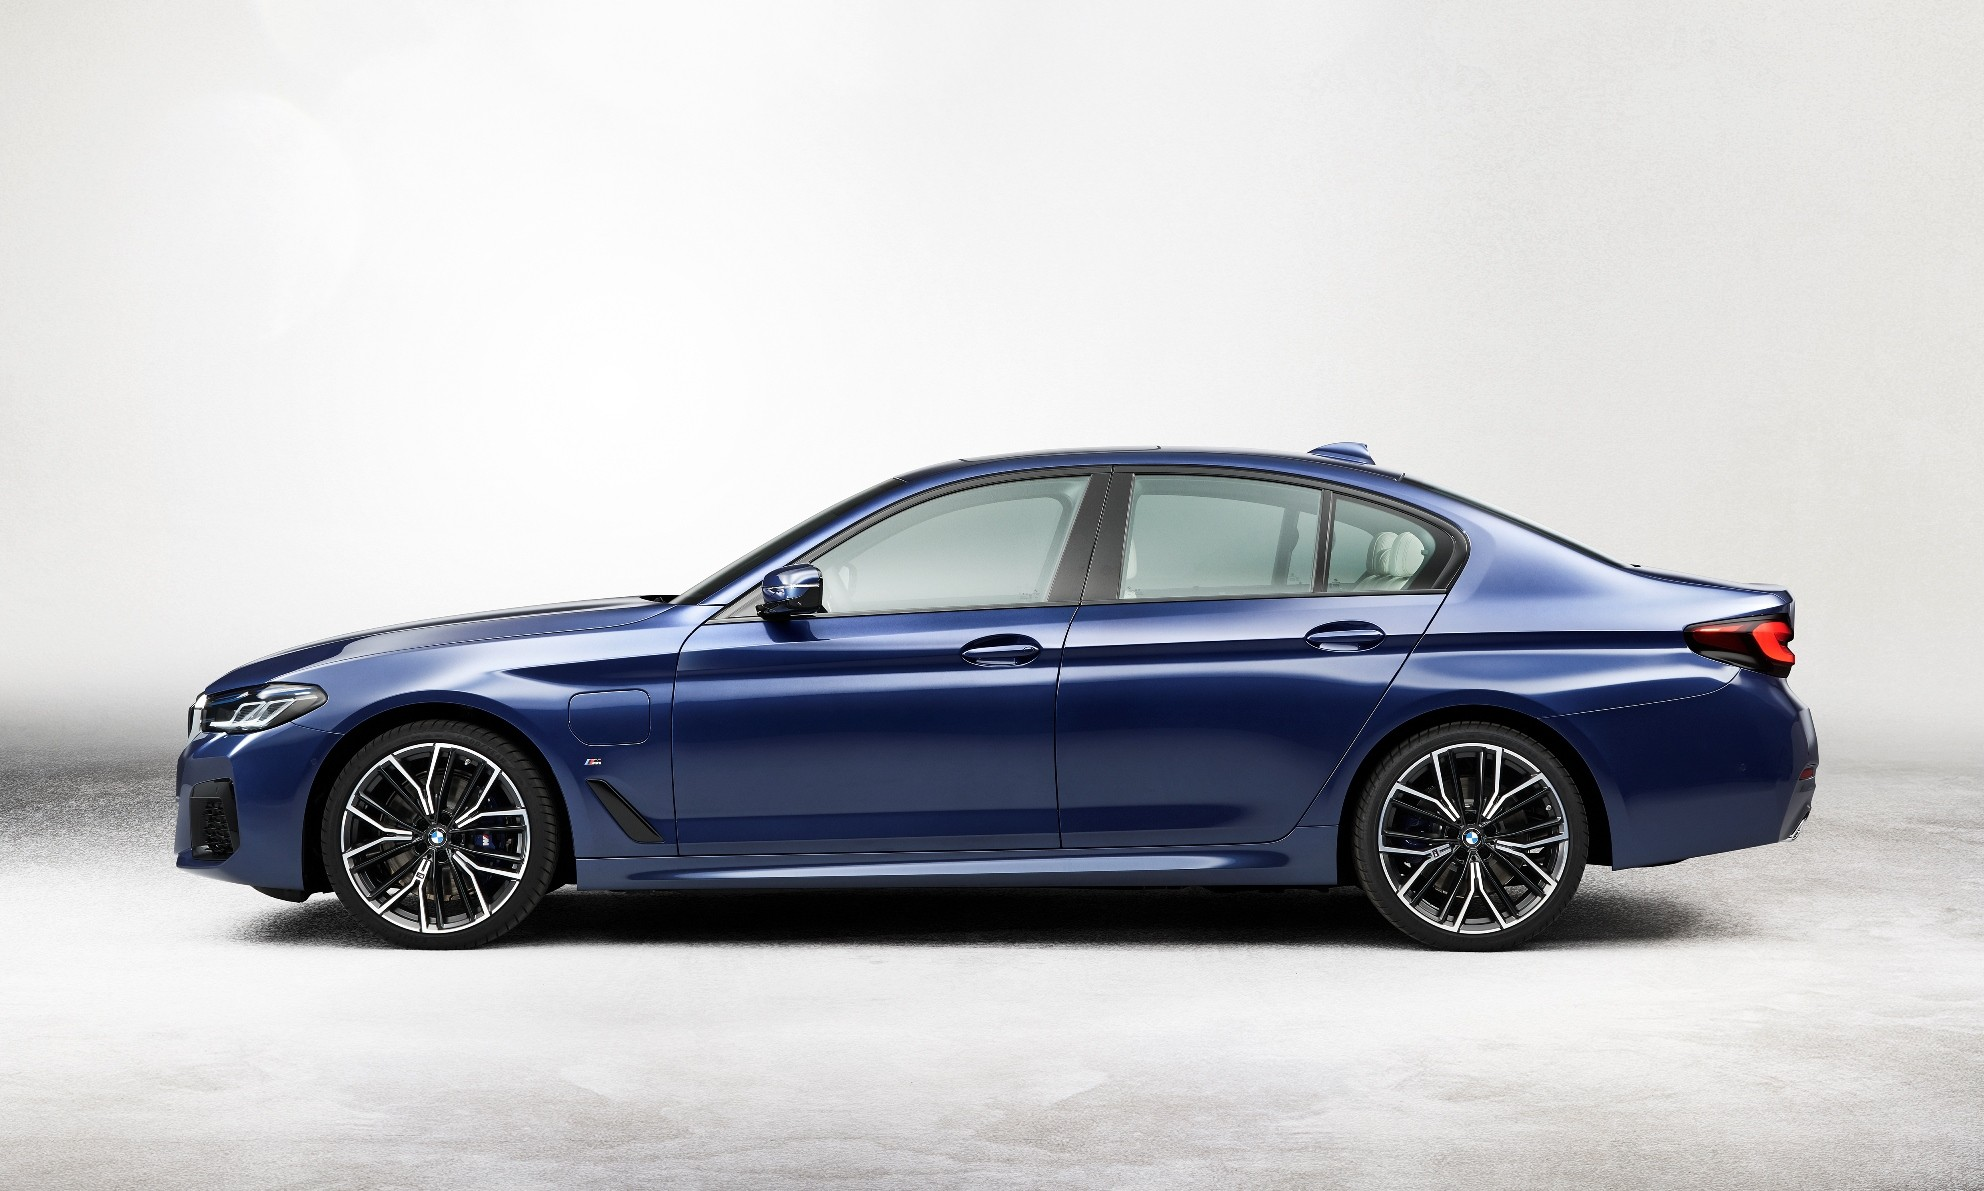 Facelifted BMW 5 Series profile